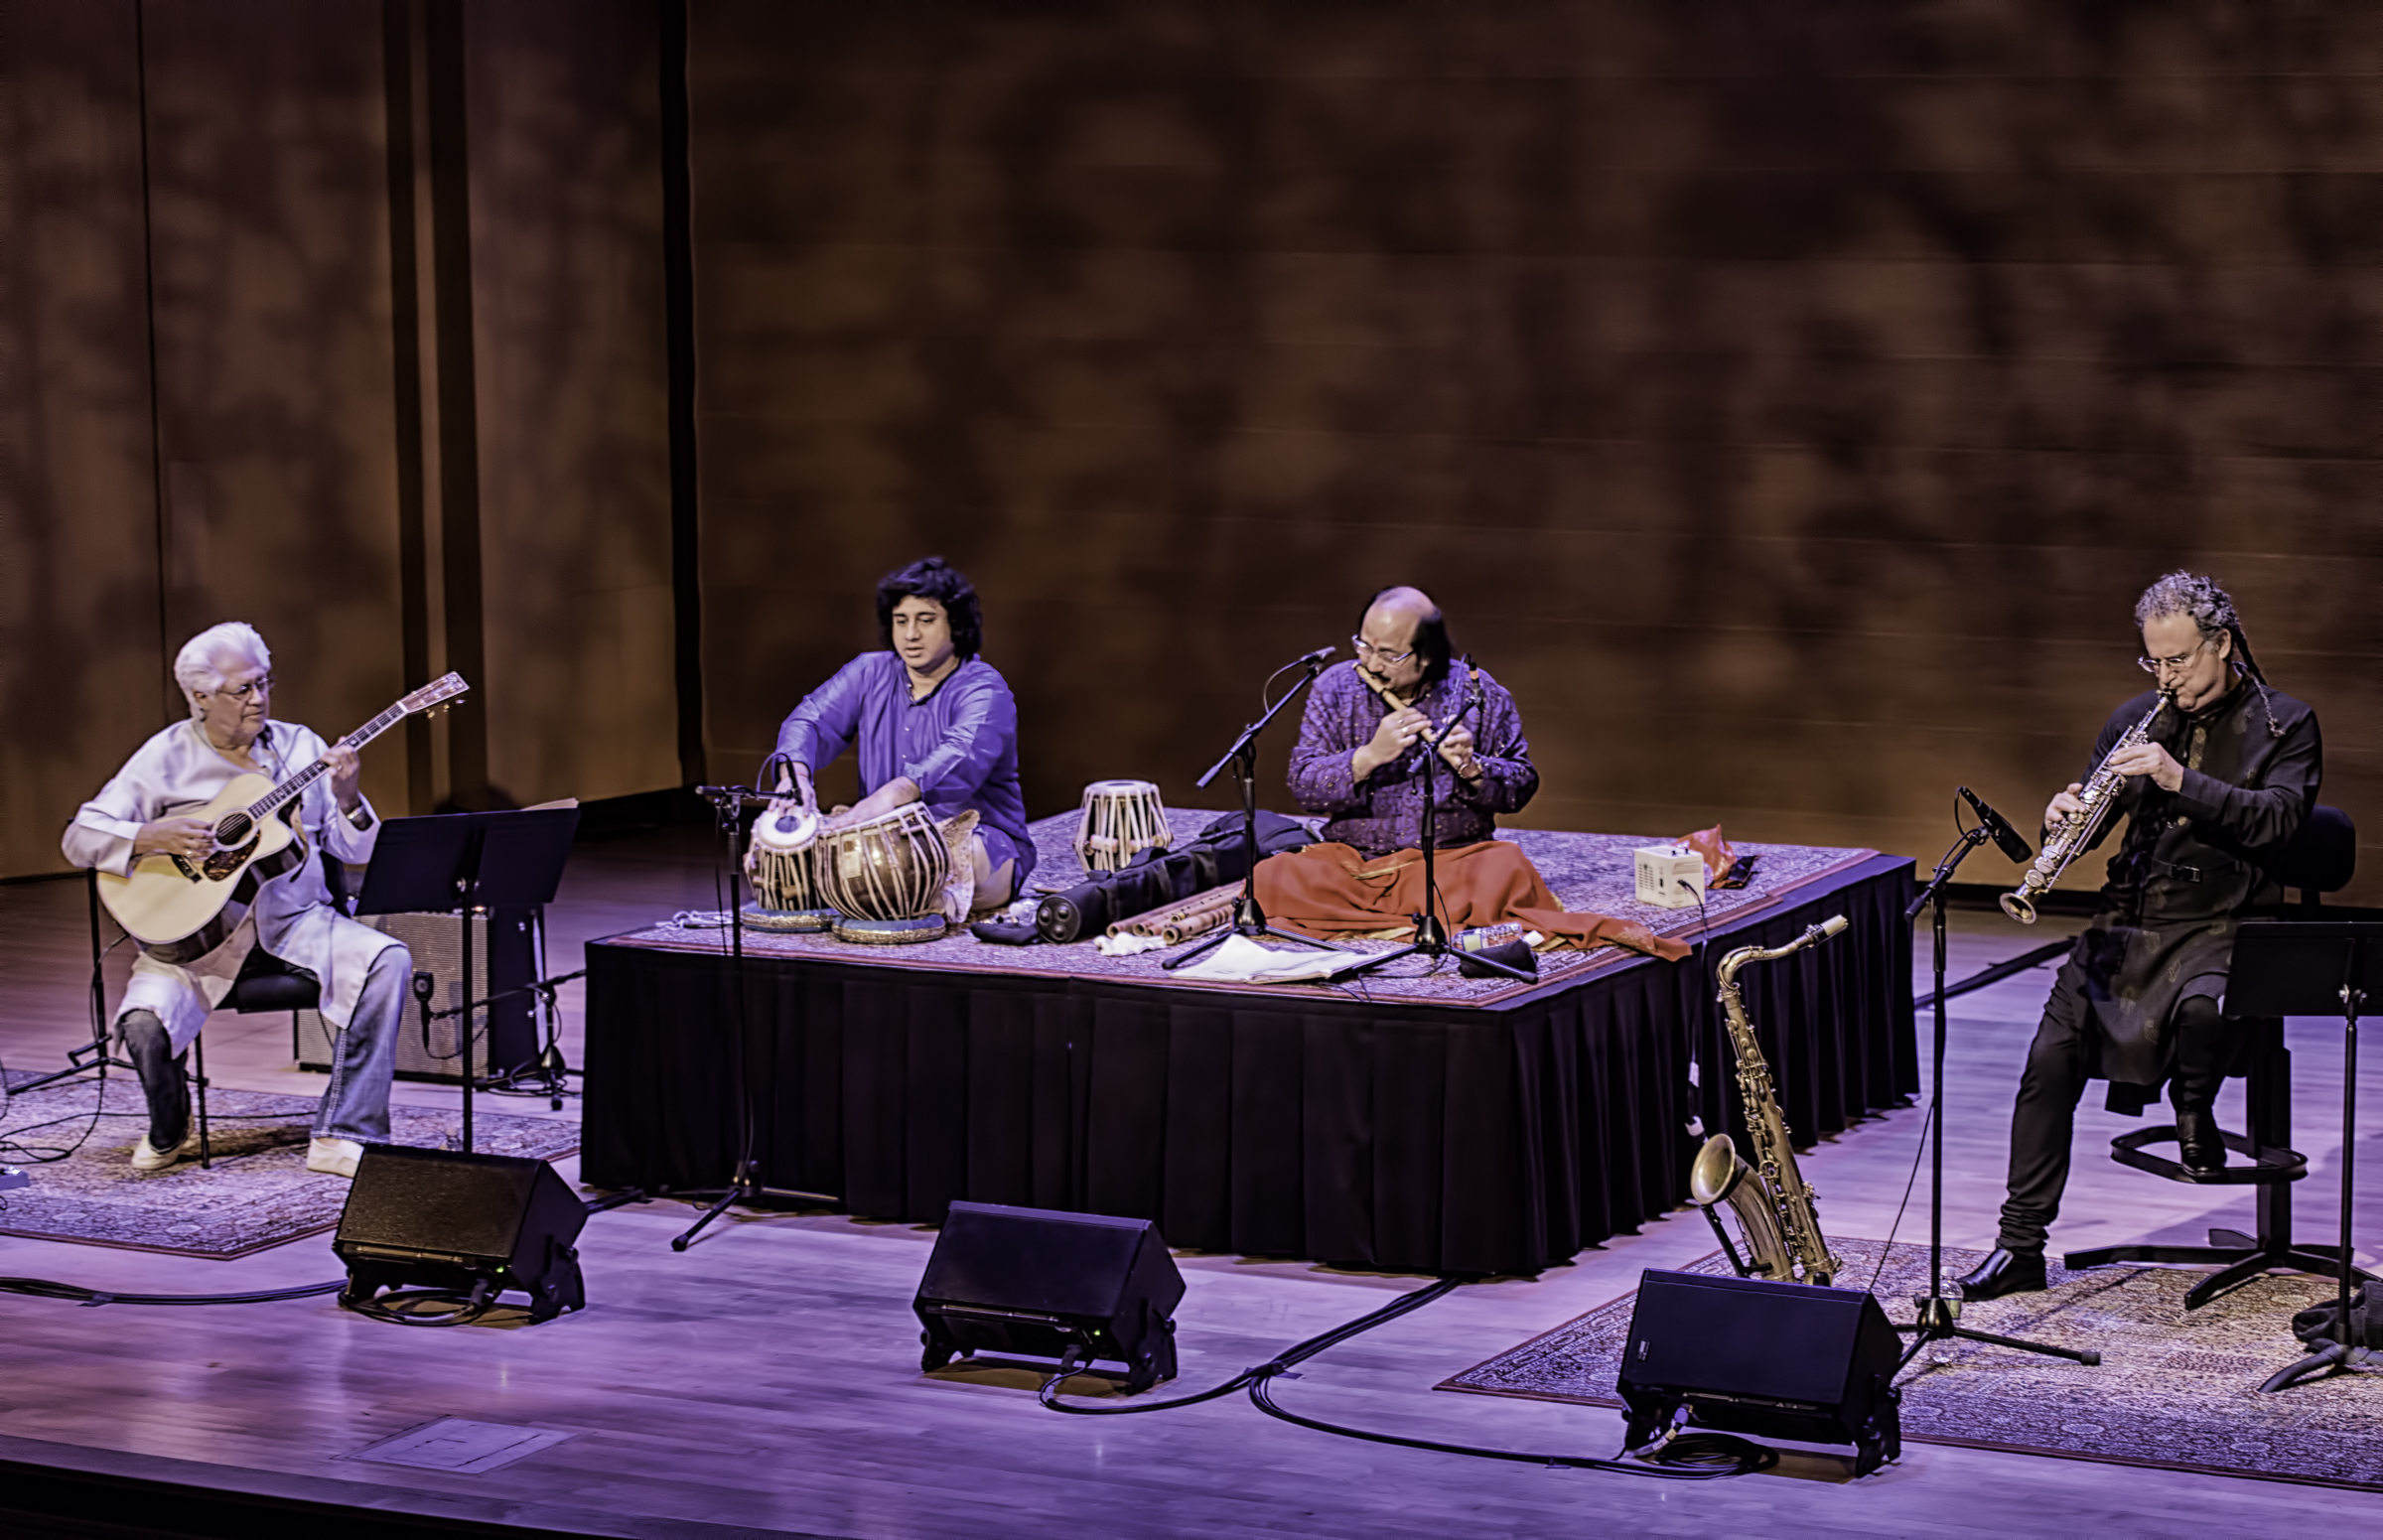 Larry Coryell, Aditya Kalyanpur, Ronu Majumdar And George Brooks With Bombay Jazz At The Musical Instrument Museum (mim) In Phoenix